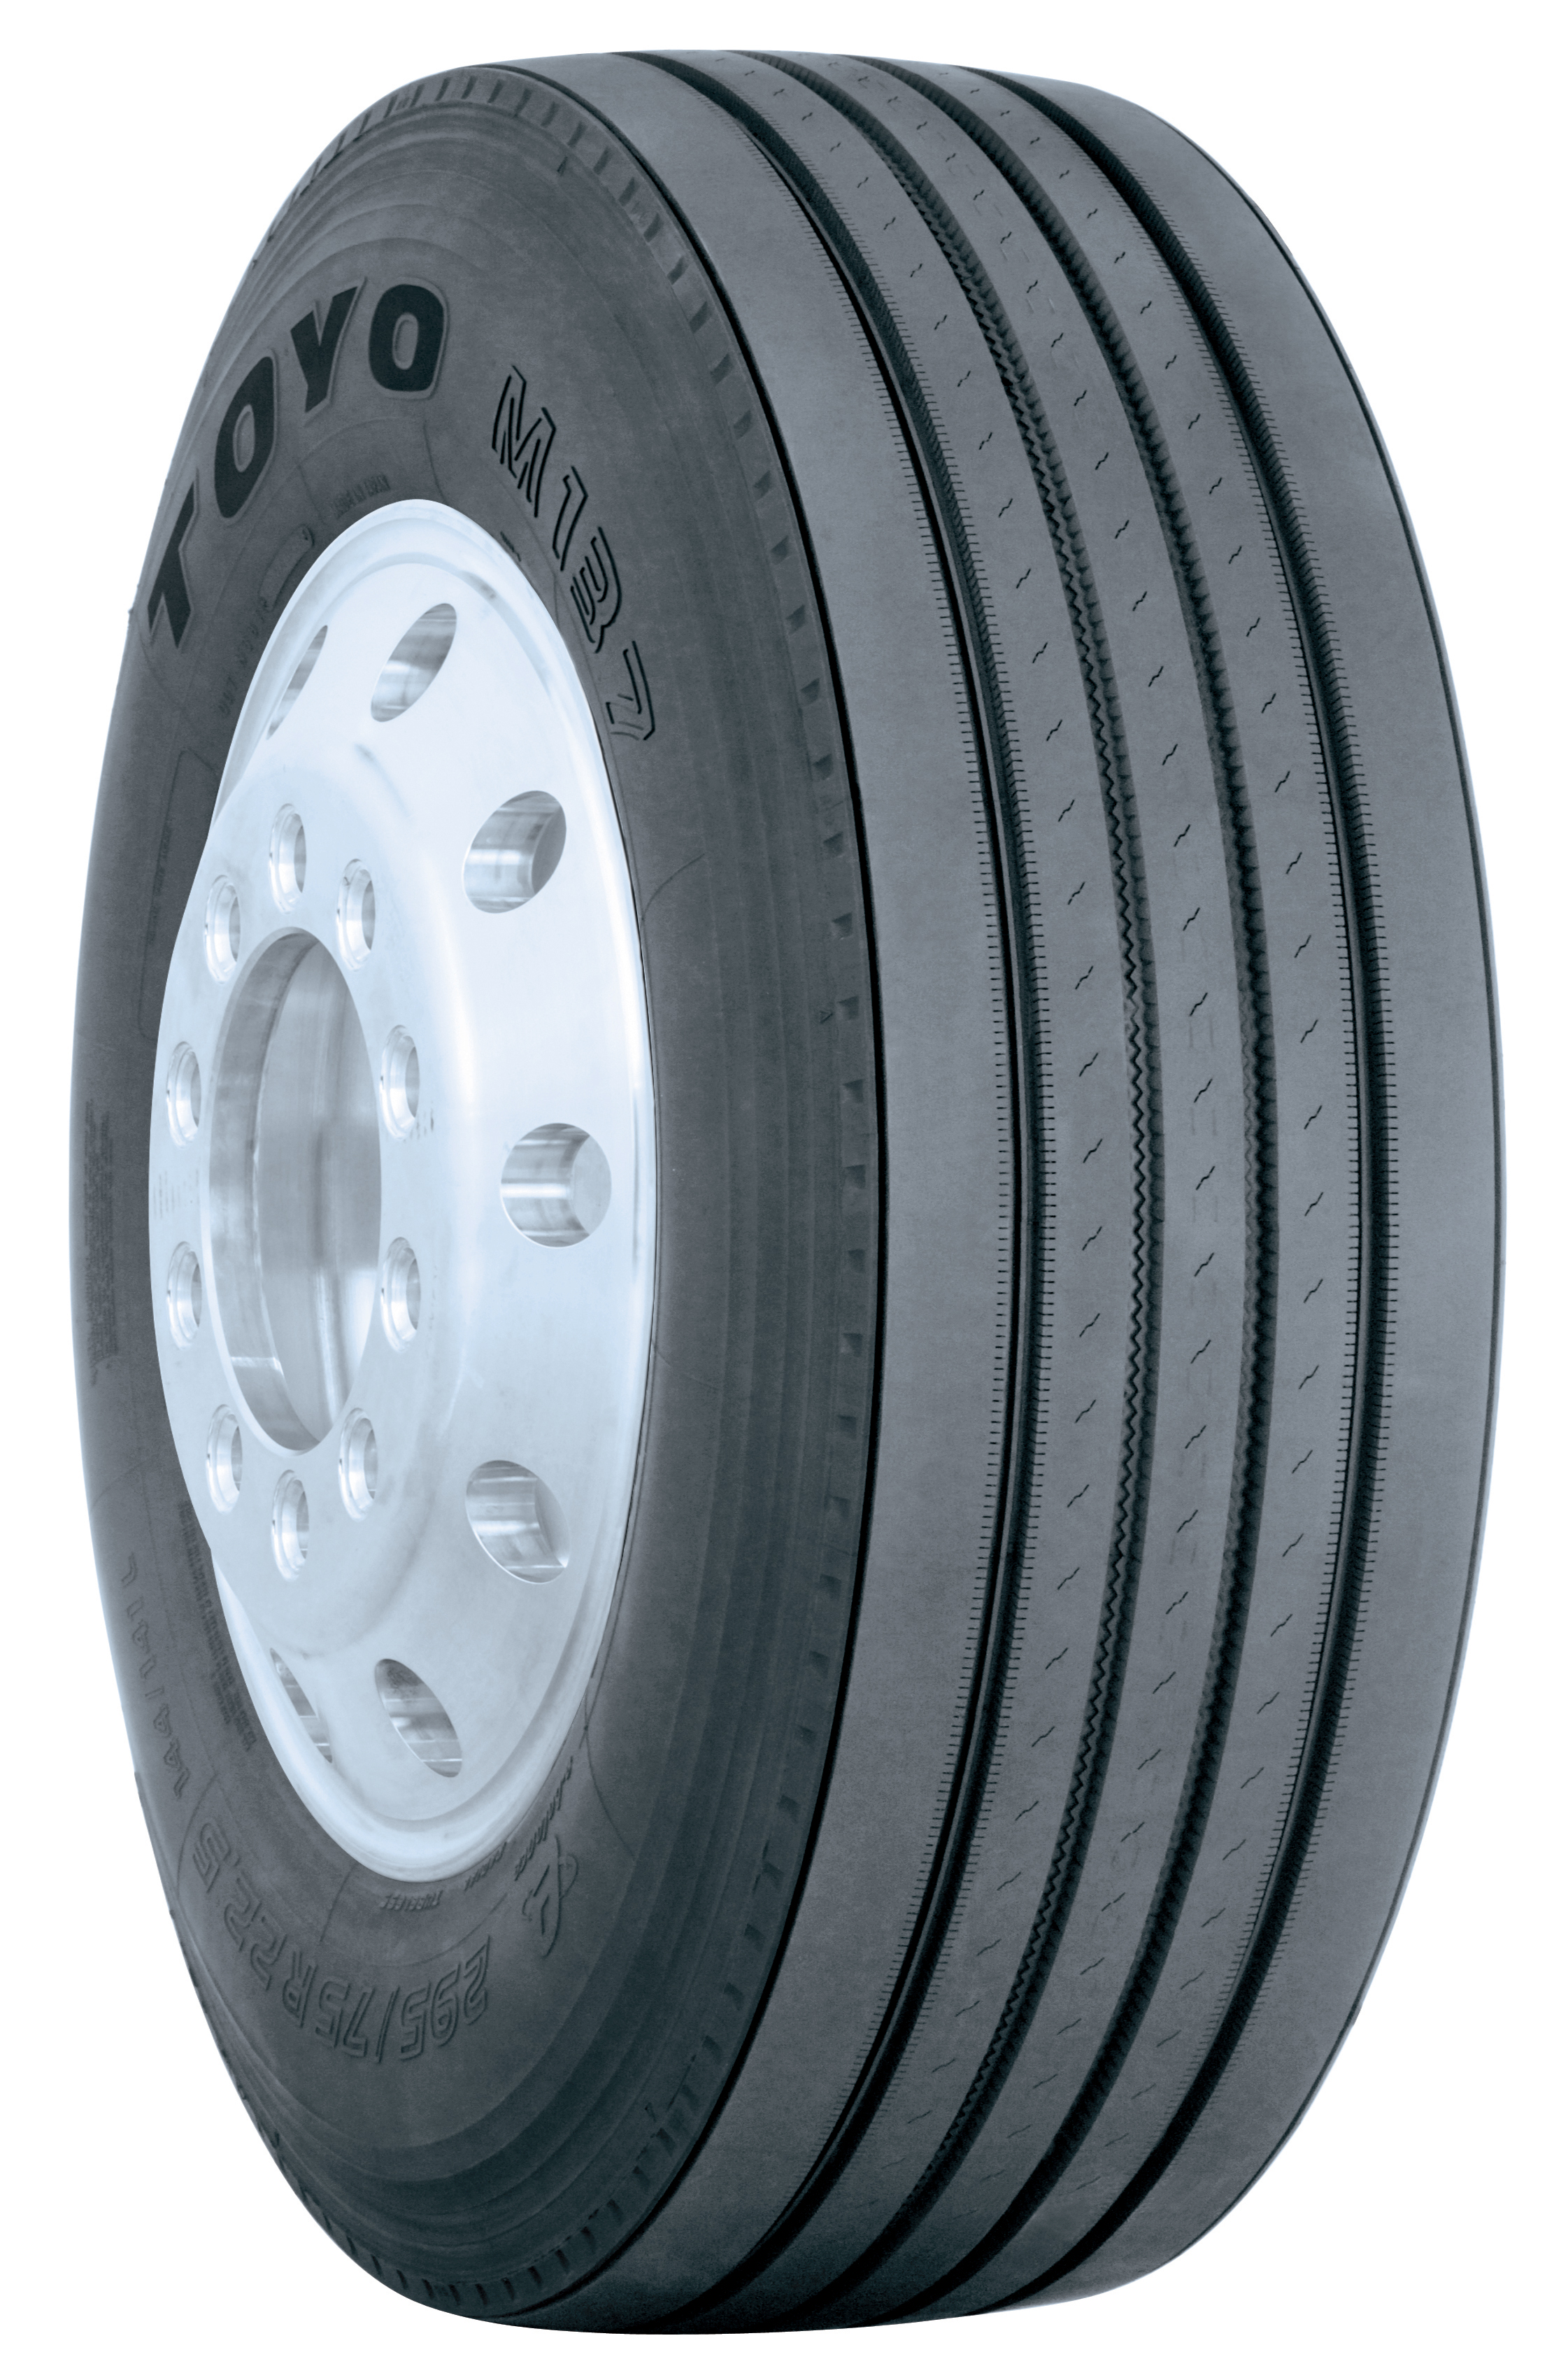 Toyo premium HP steer tire available in 16-ply